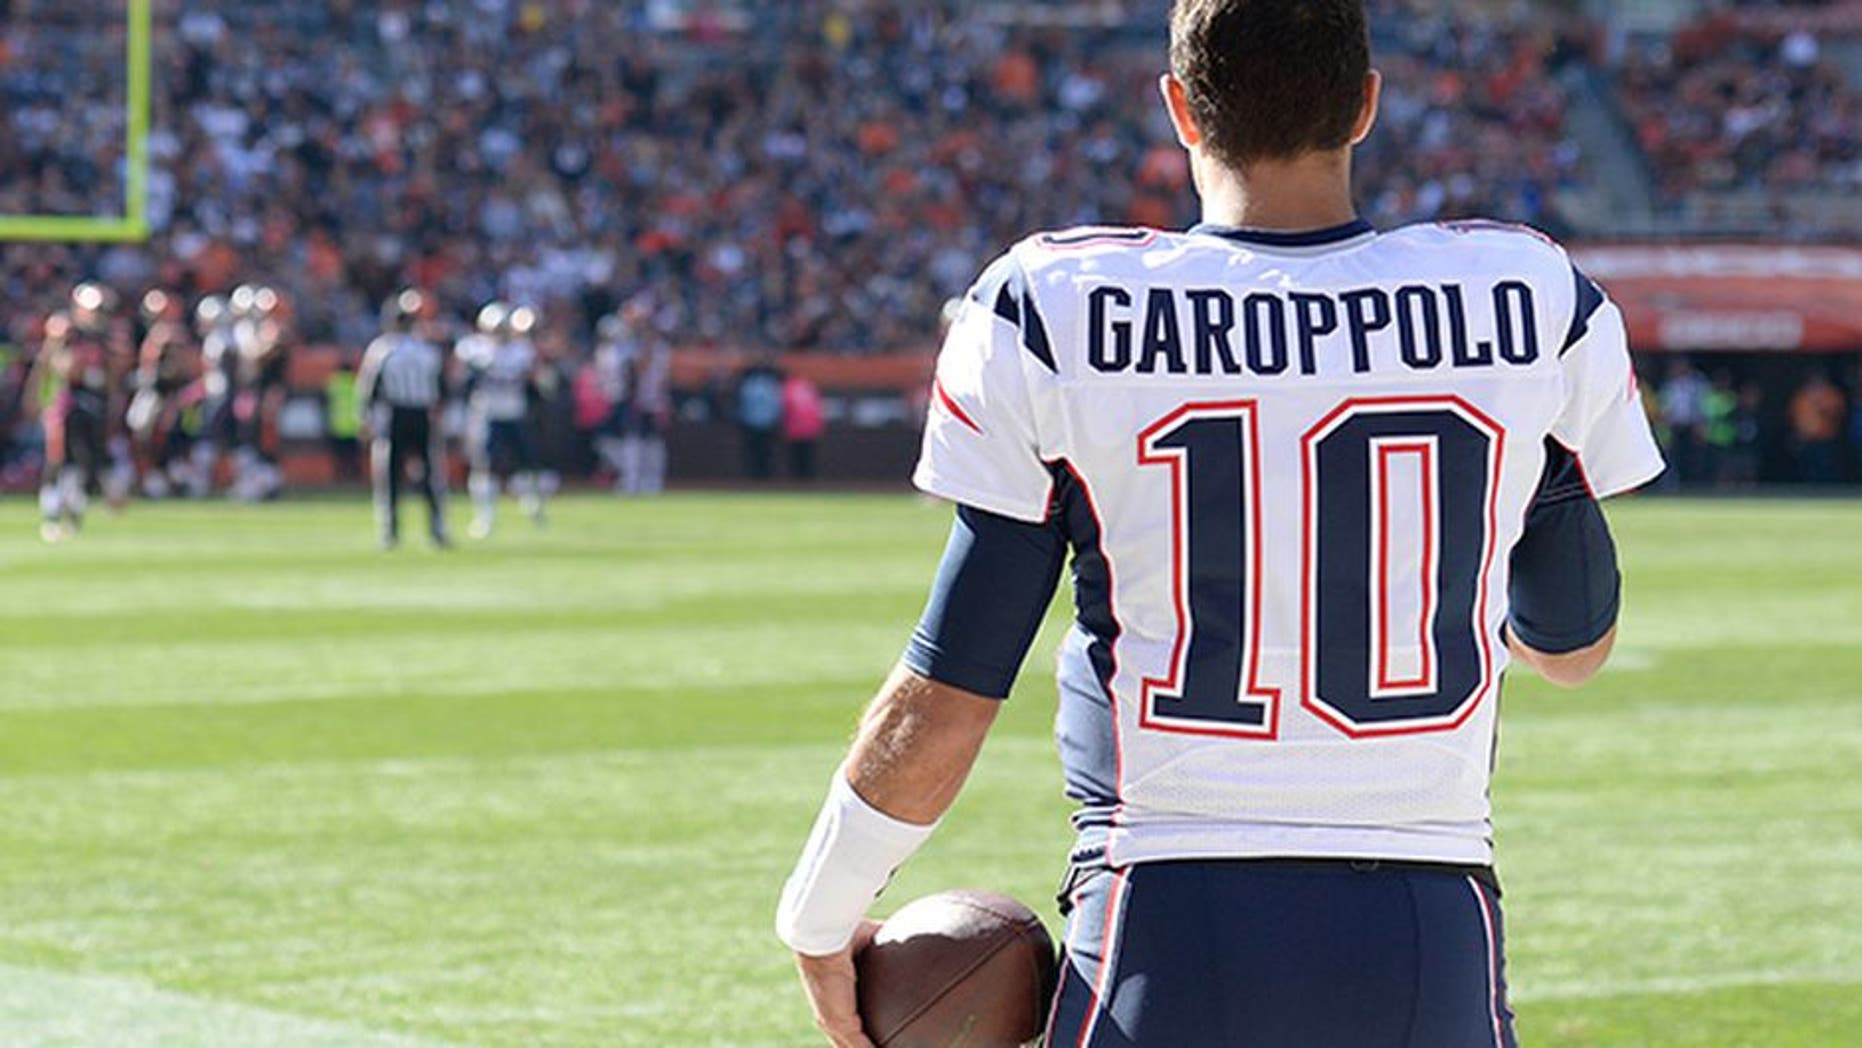 New England Patriots quaterback Jimmy Garoppolo (10) watches the action during the 2016 NFL week 5 regular season football game against the Cleveland Browns on Sunday, Oct. 9, 2016 in Cleveland. The Patriots defeated the Browns 33-13. (Jim Mahoney via AP)